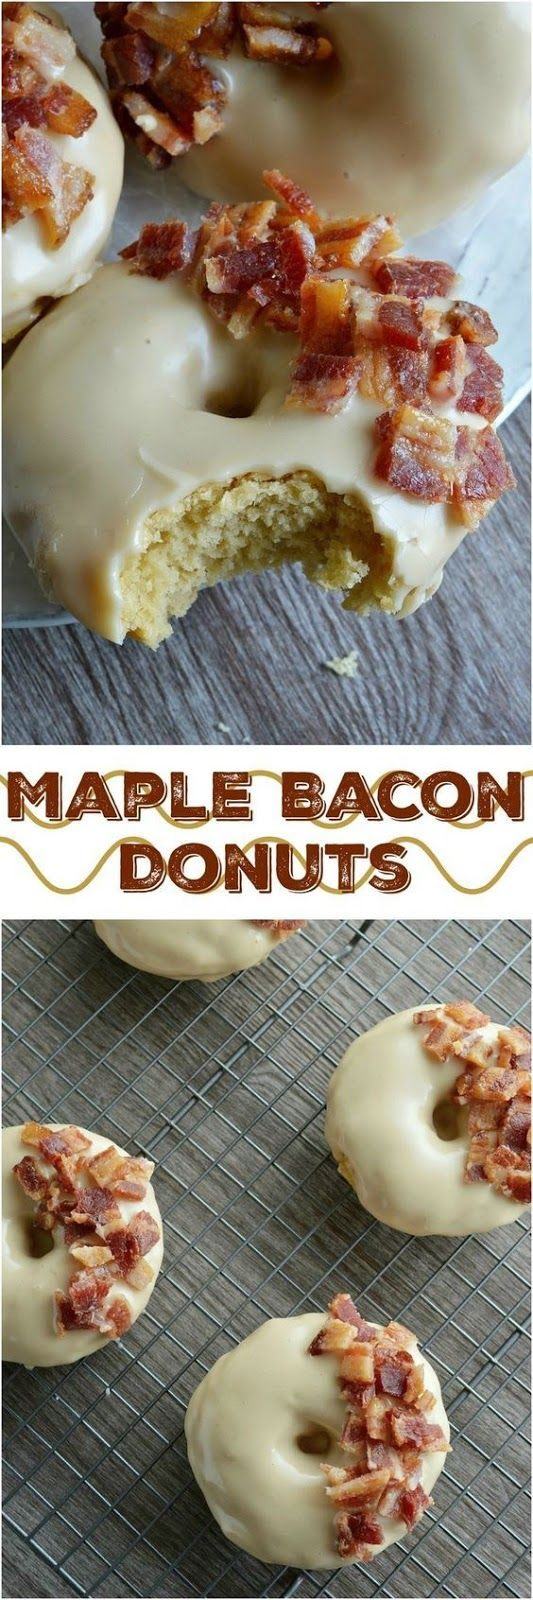 Maple Bacon Donuts   Food And Cake Recipes